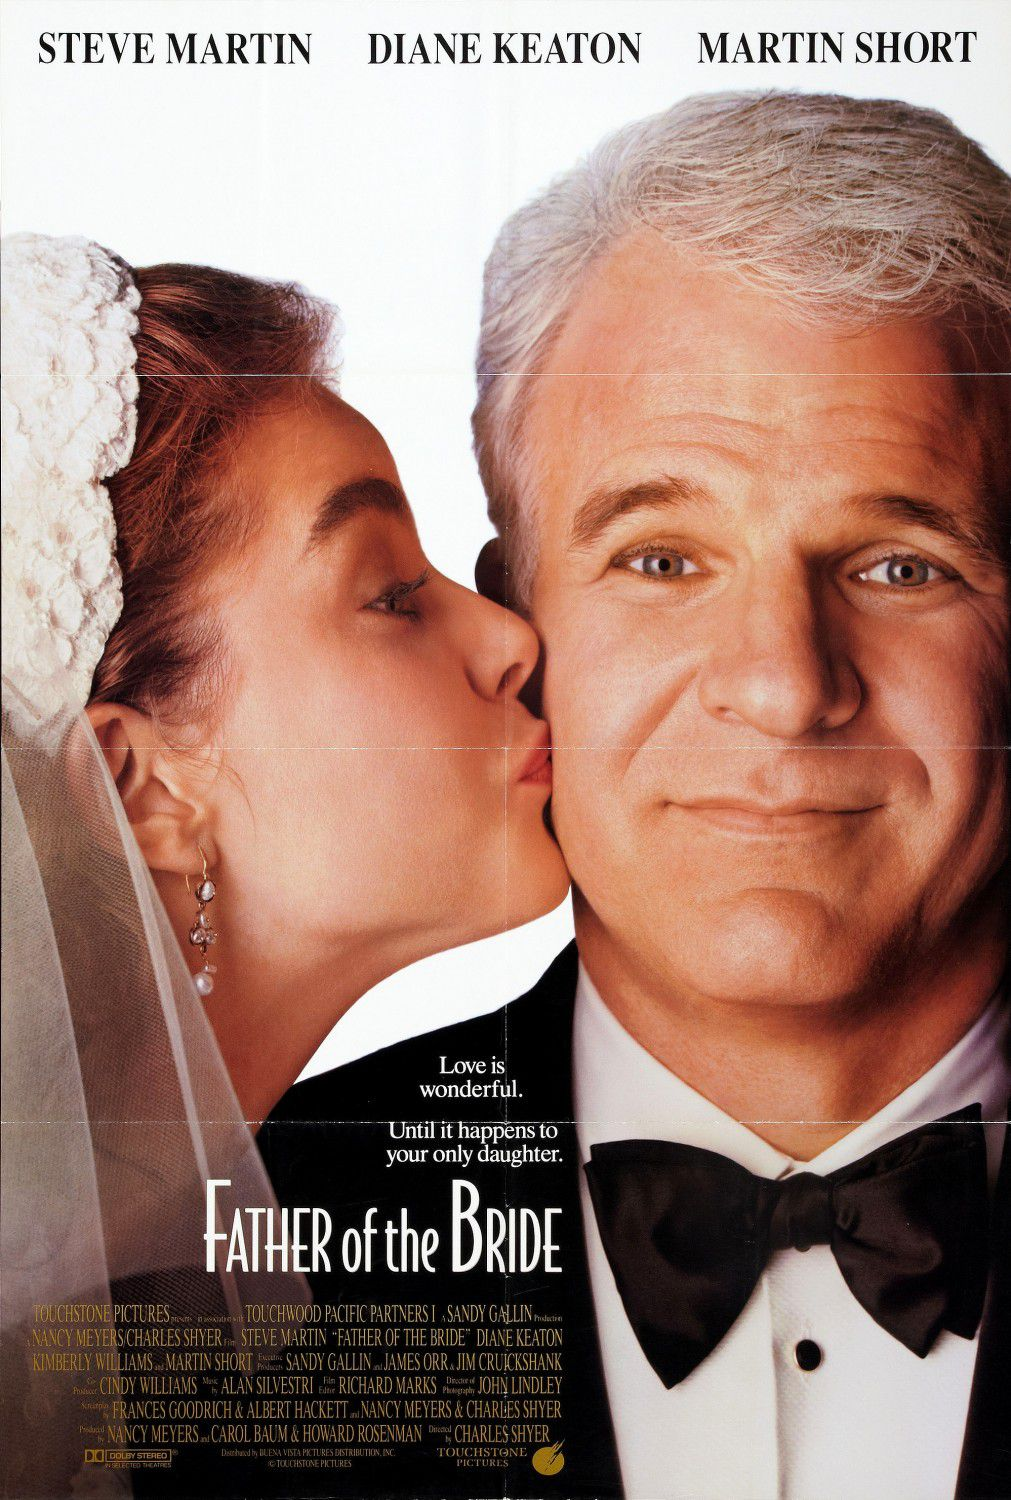 Father of the Bride - il Padre della Sposa - 1991 - Steve Martin - Diane Keaton - Martin Short  - film comedy poster